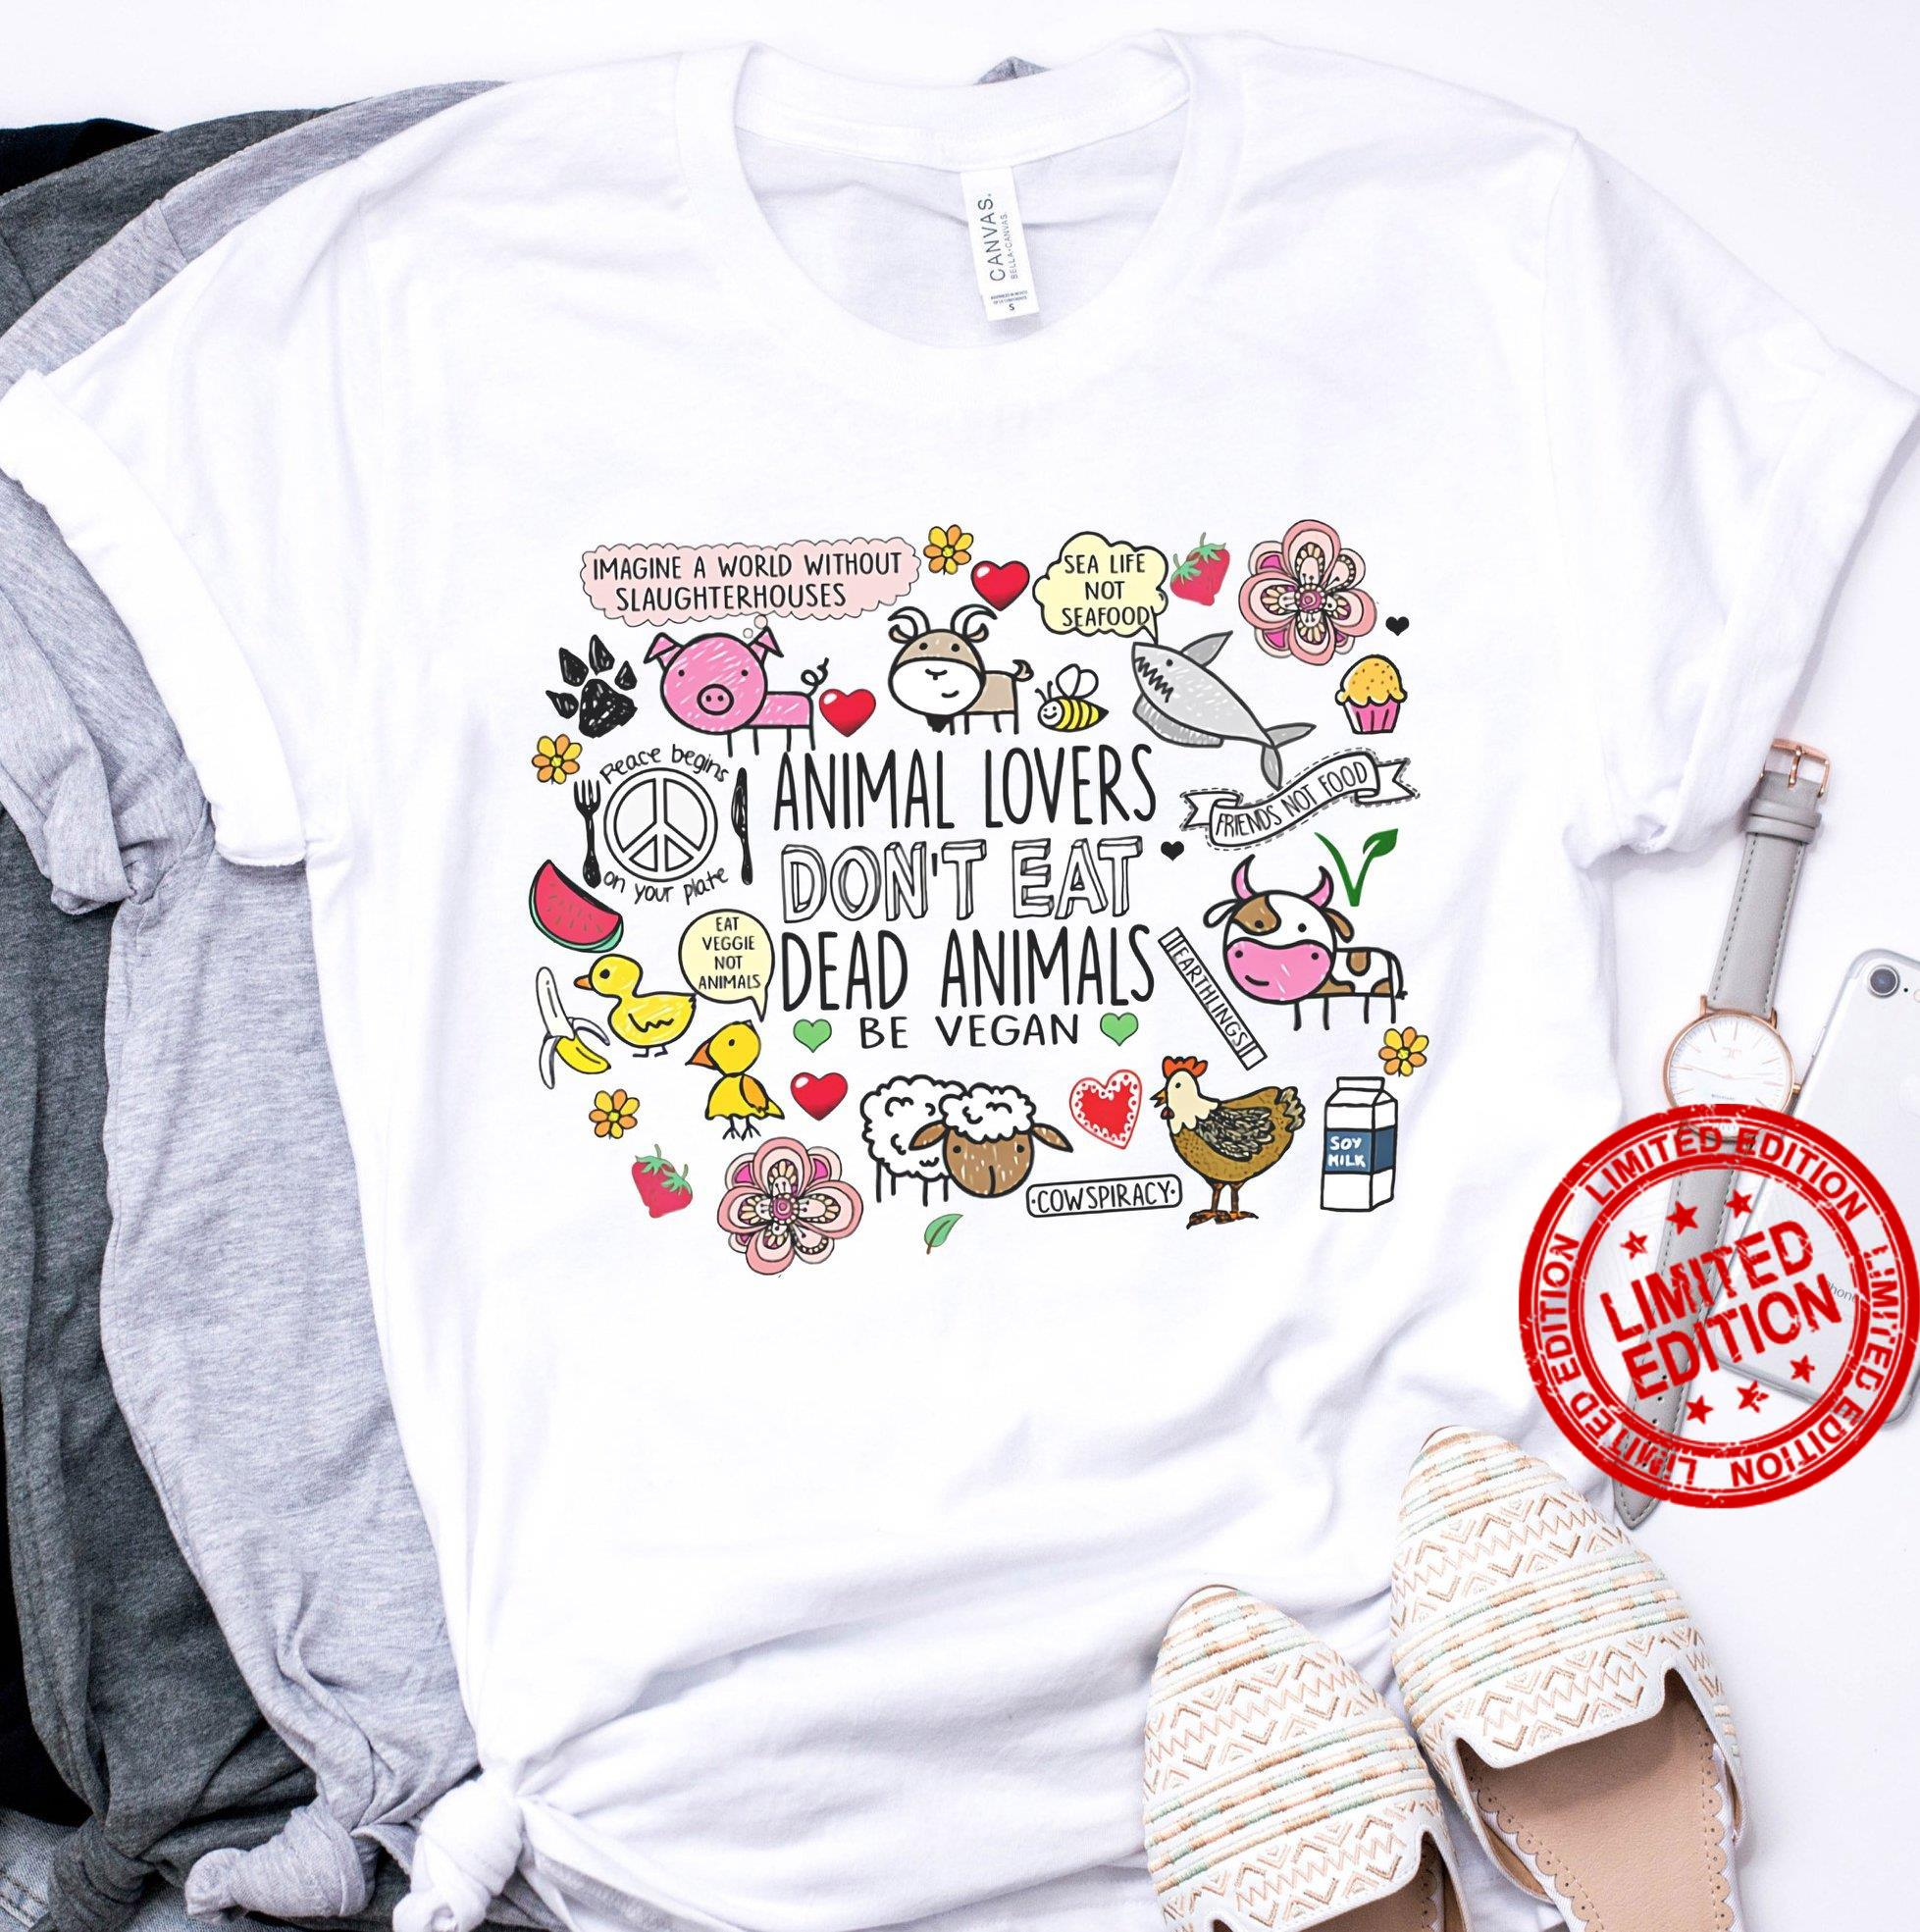 Imagine A World Without Slaughterhouses Animal Lovers Don't Eat Dead Animals Be Vegan Shirt